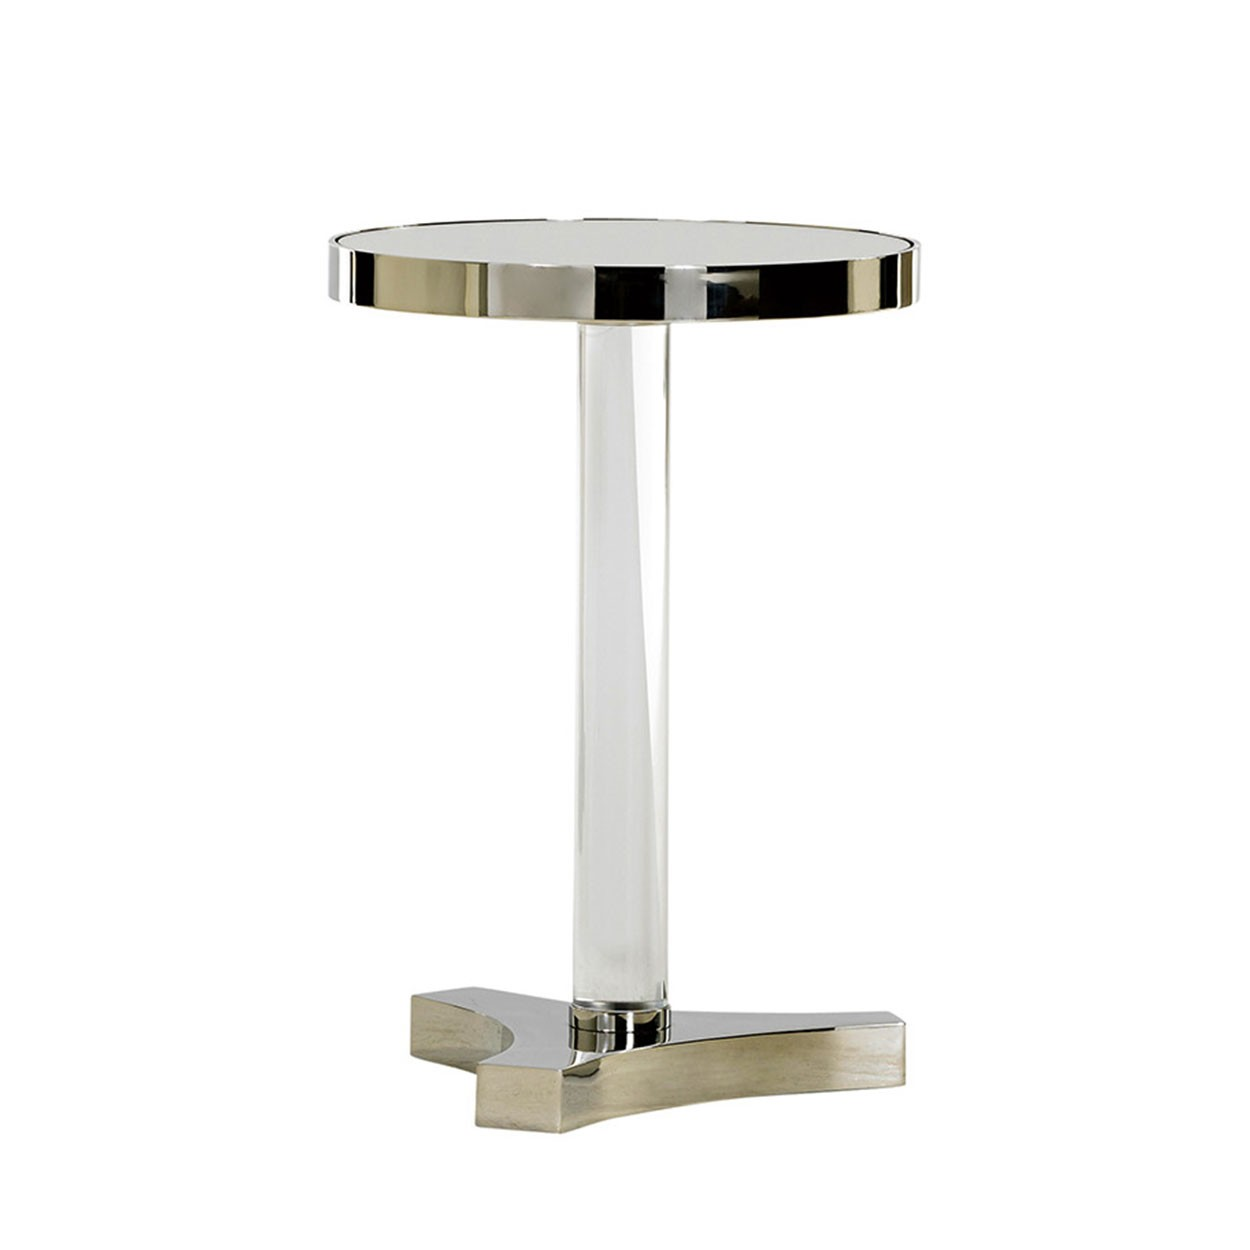 kinnard accent table acrylic stainless lexington semi circle side chrome door threshold steel legs room essentials lamp wedding covers wood and metal nesting tables gold plastic